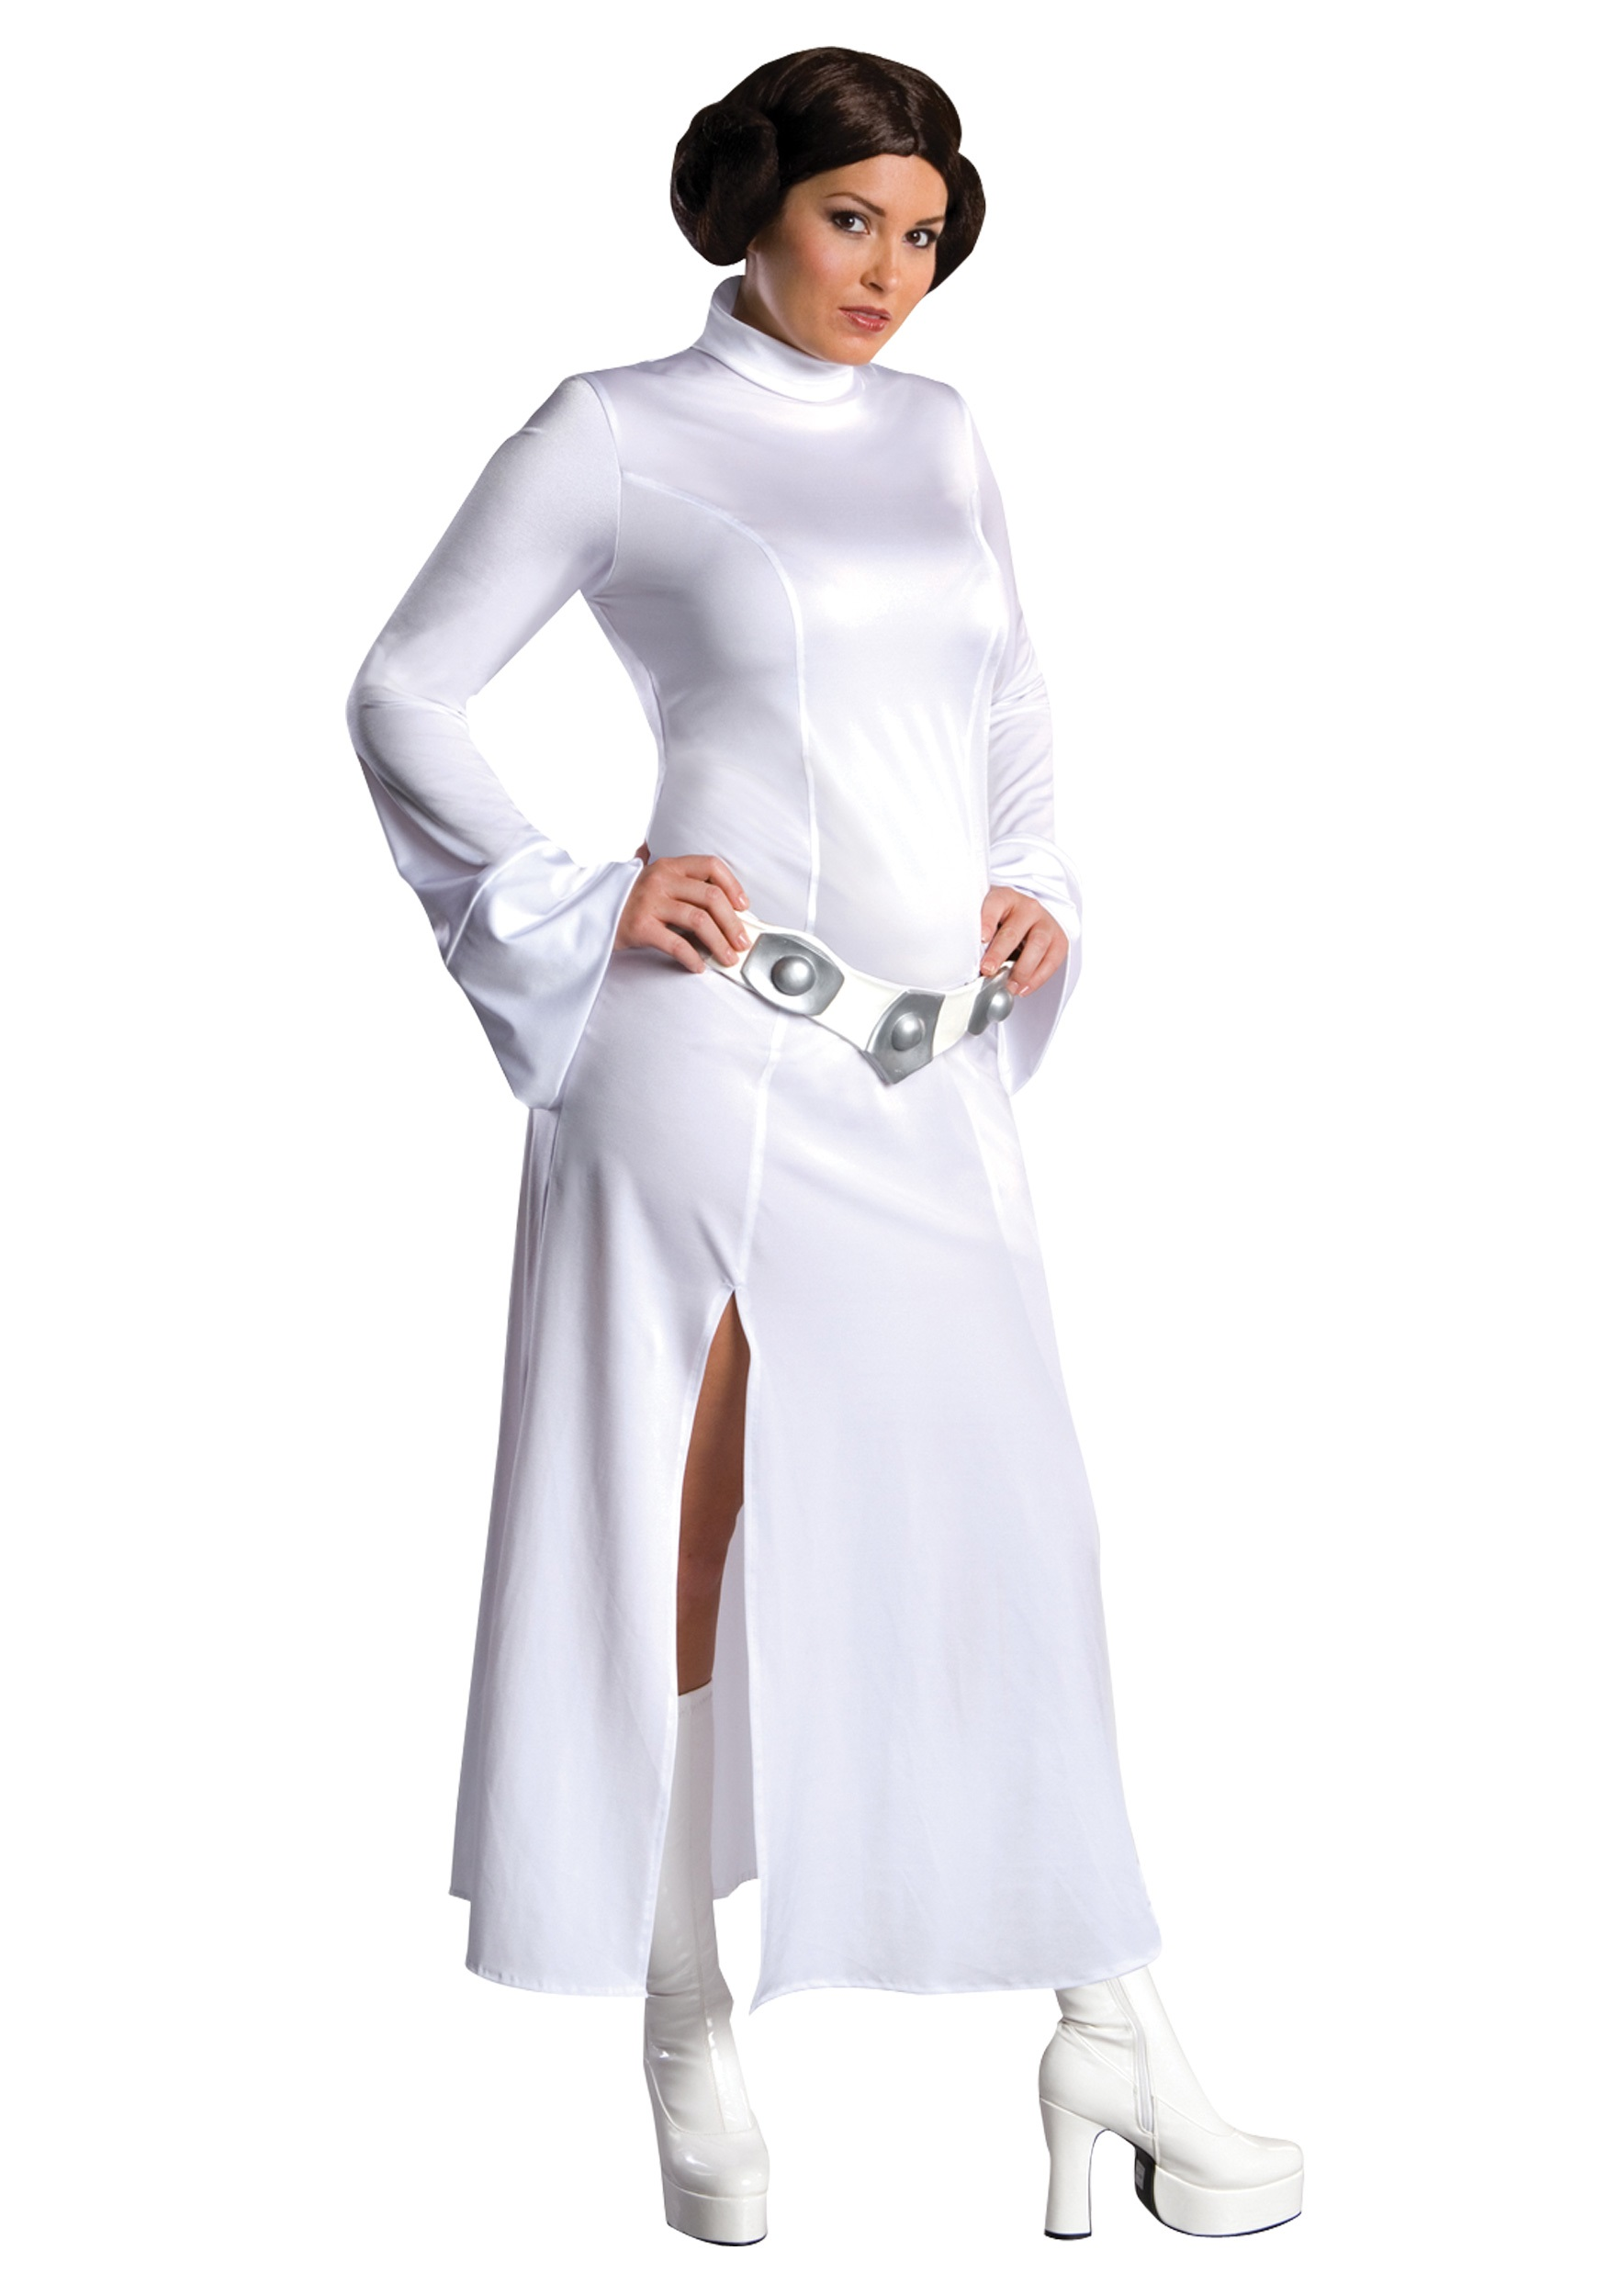 Sexy Princess Leia Plus Size Costume - Sexy Star Wars Costumes